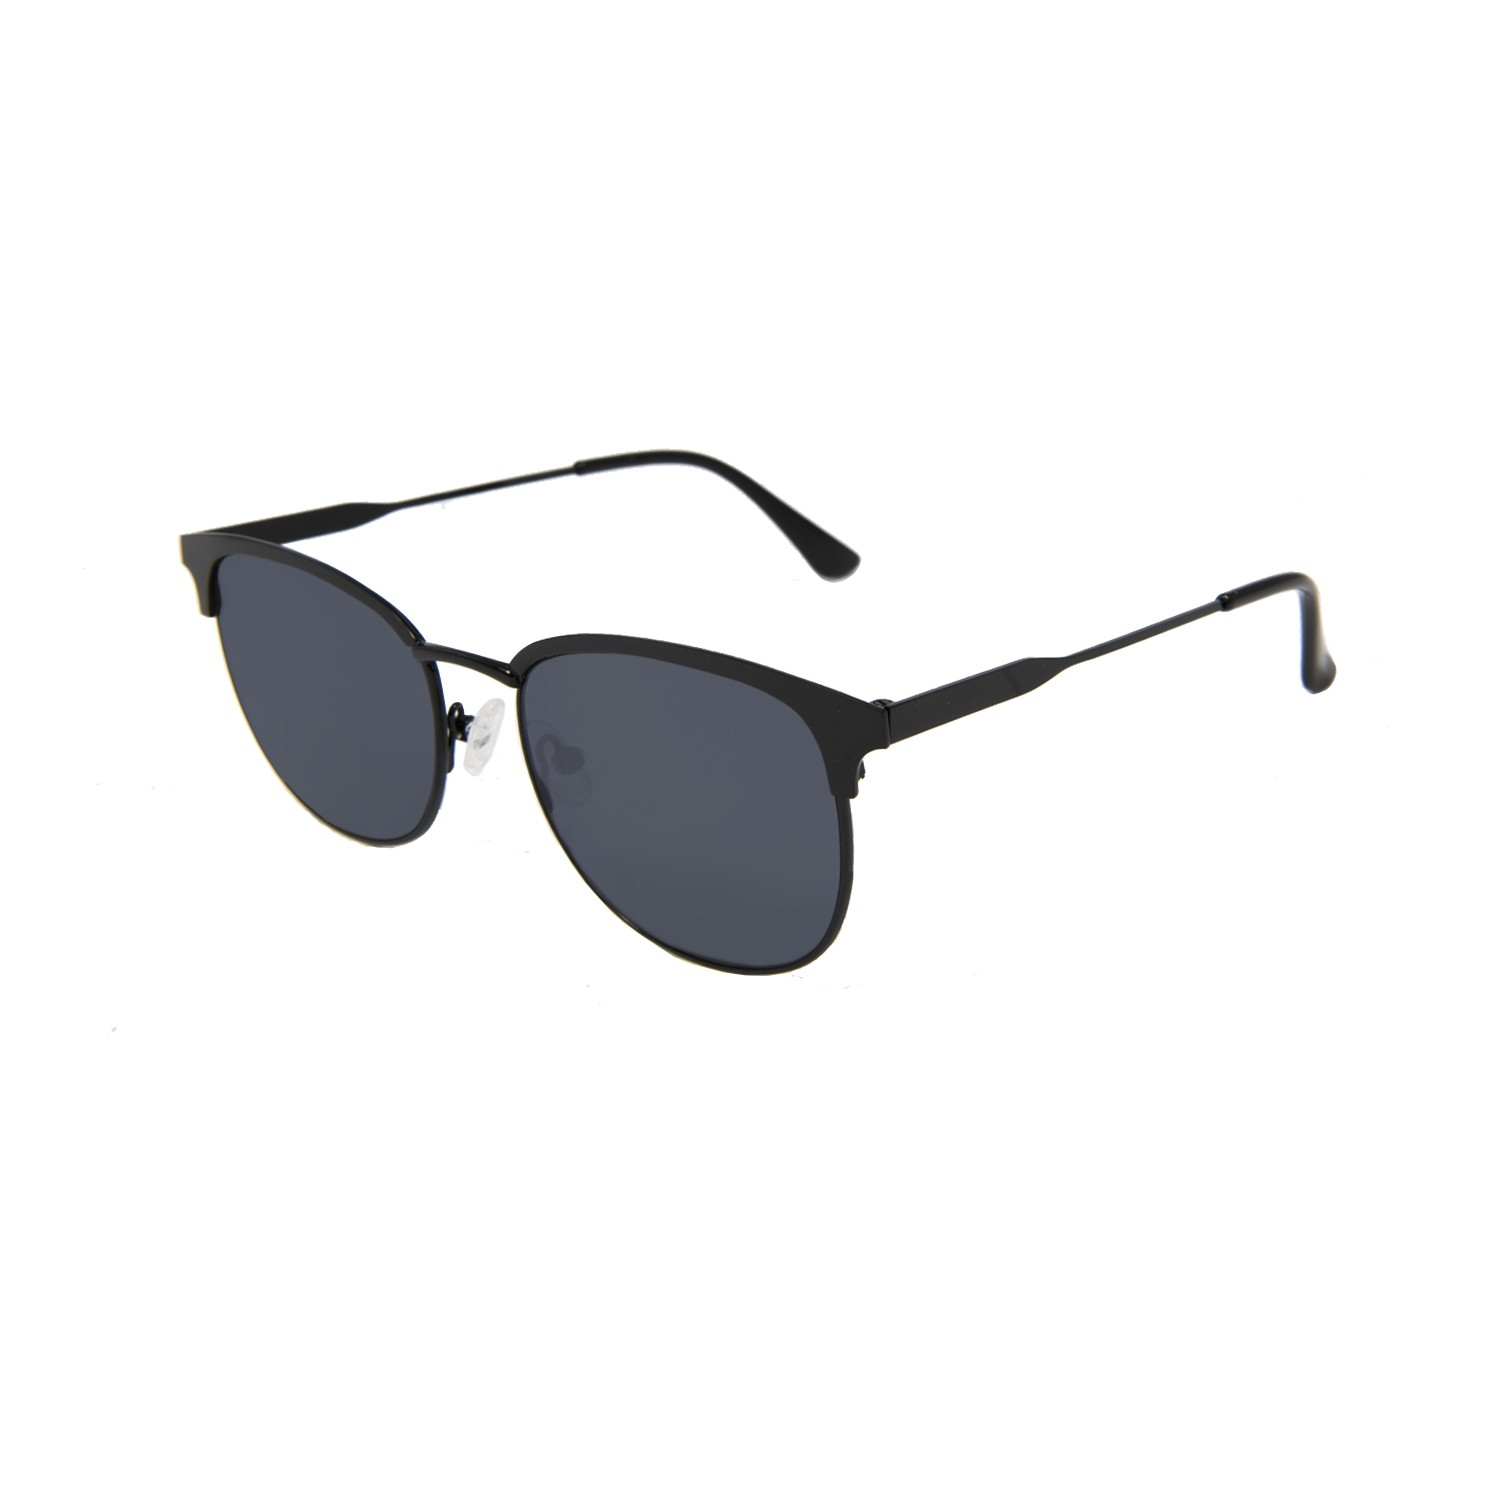 MADISON shiny black frame with flat smoke lens